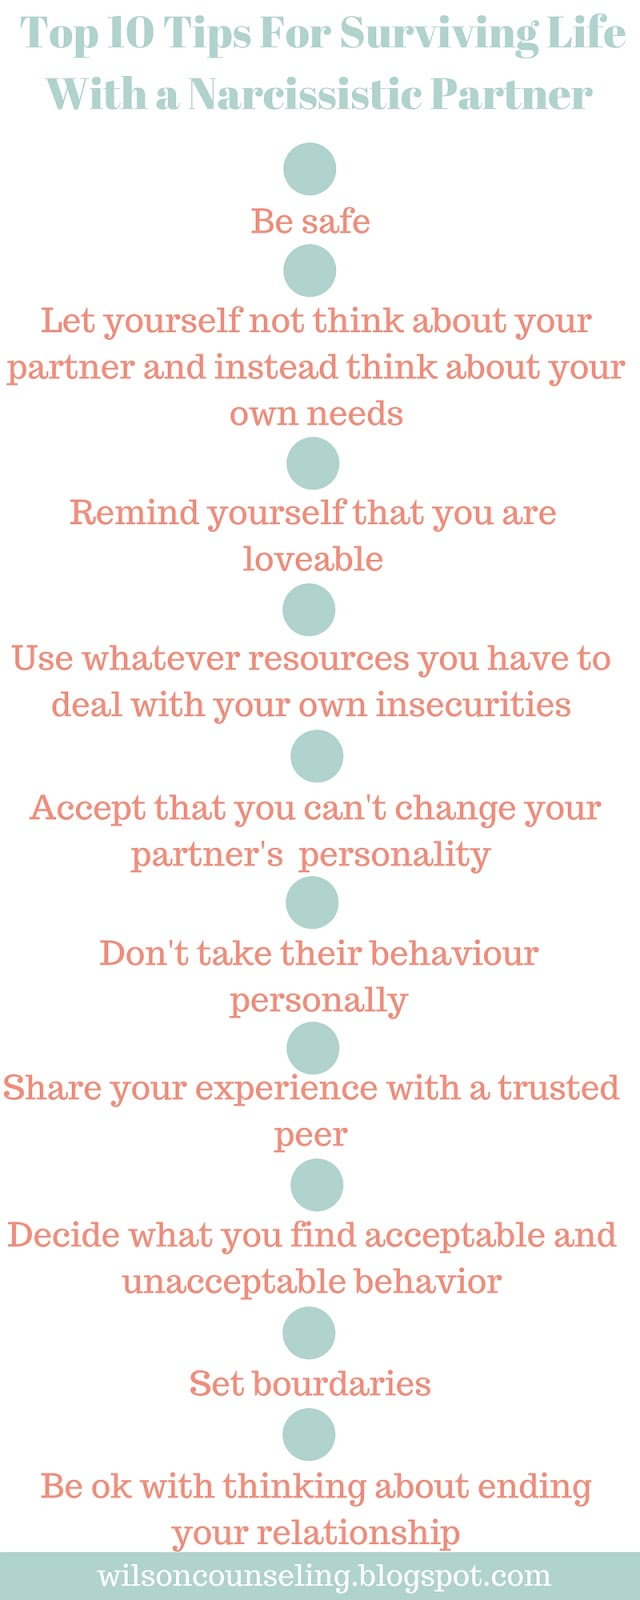 Top 10 Tips For Surviving Life With a Narcissistic Partner